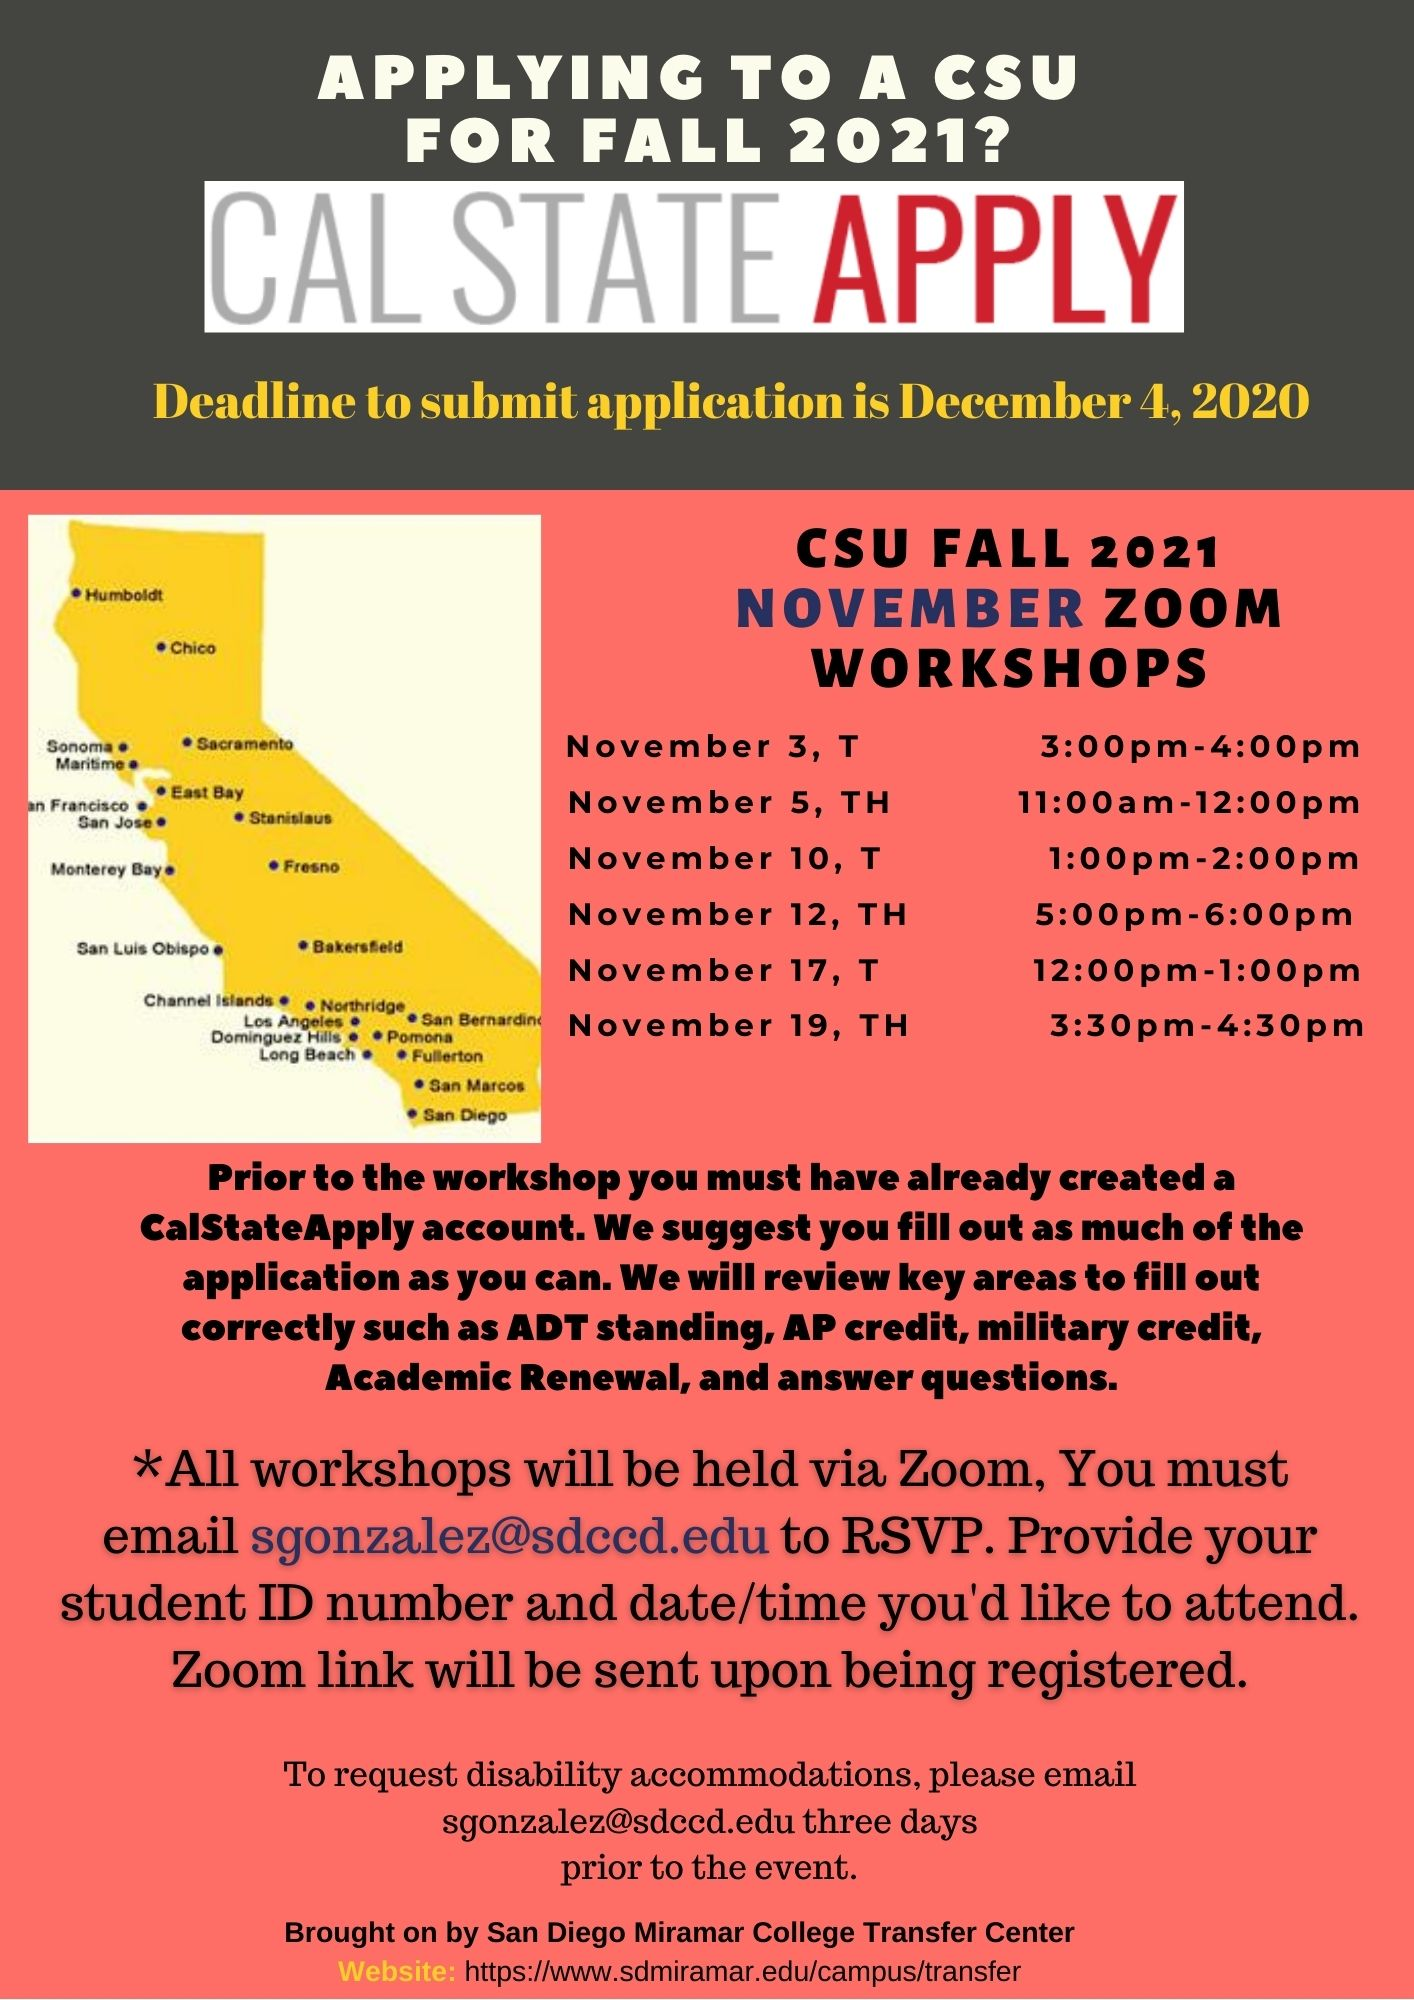 CSU November Workshops